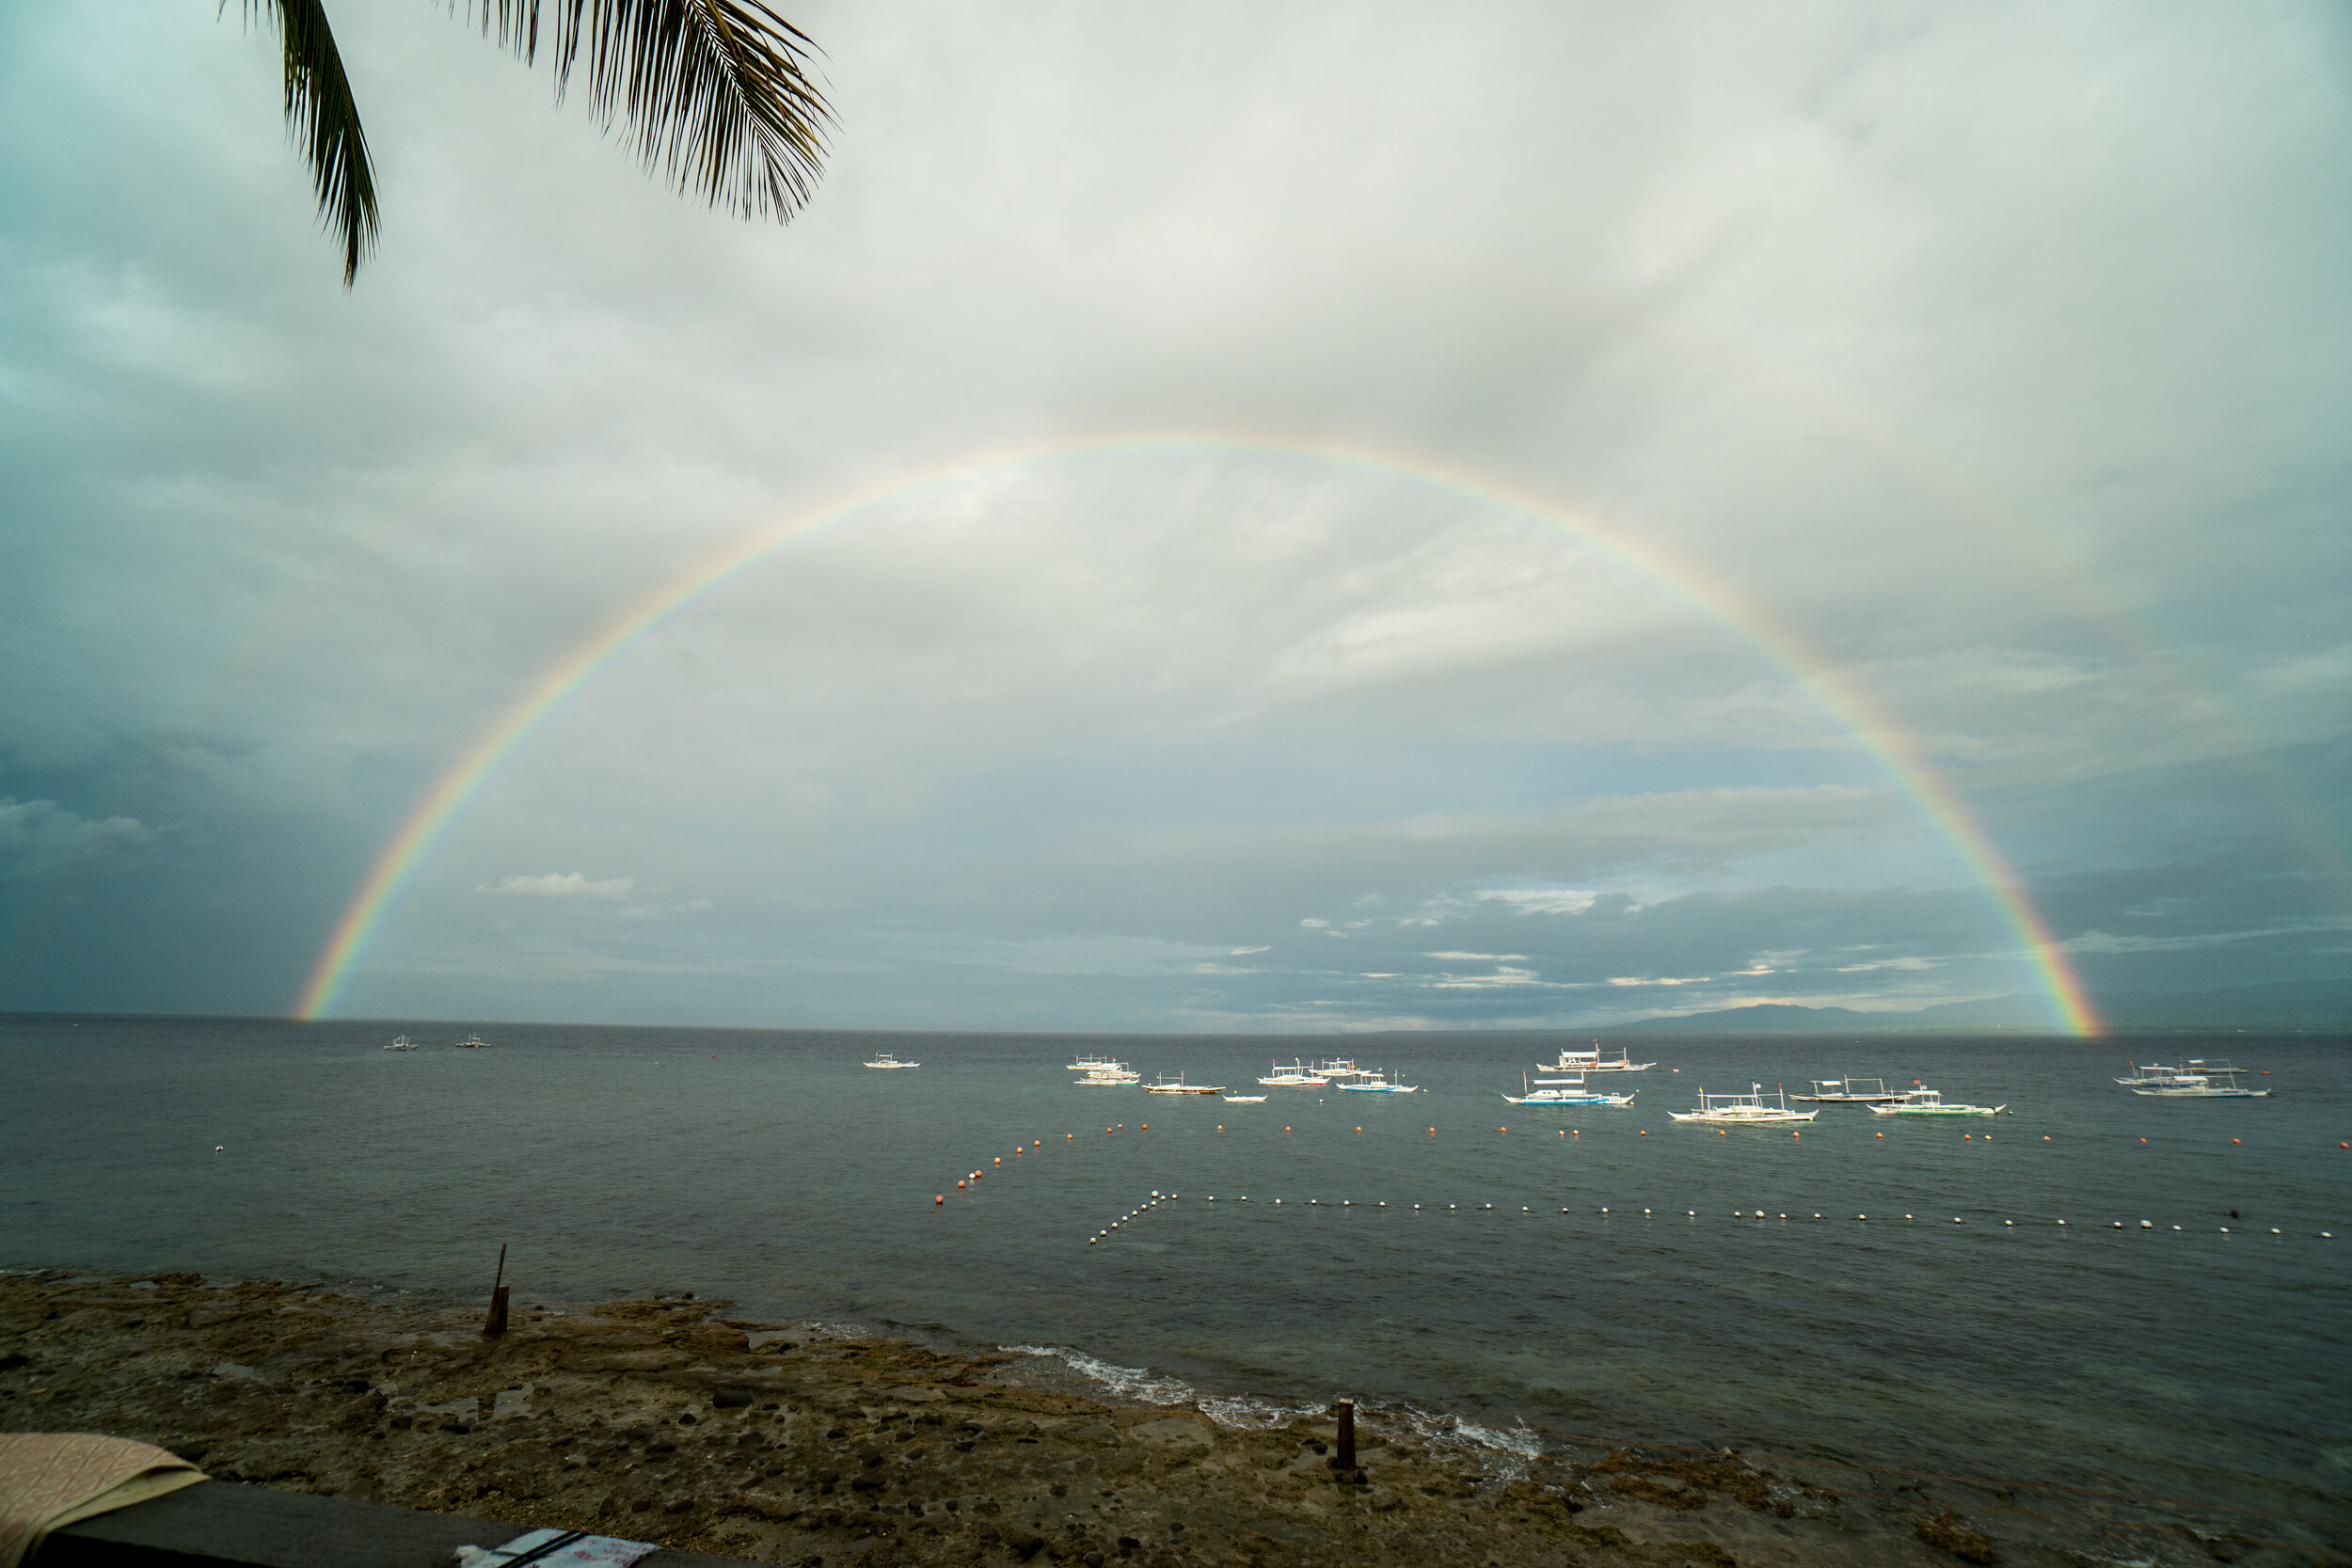 A magical rainbow across the sea facing Apo Island. /Photo by Eric Chocat